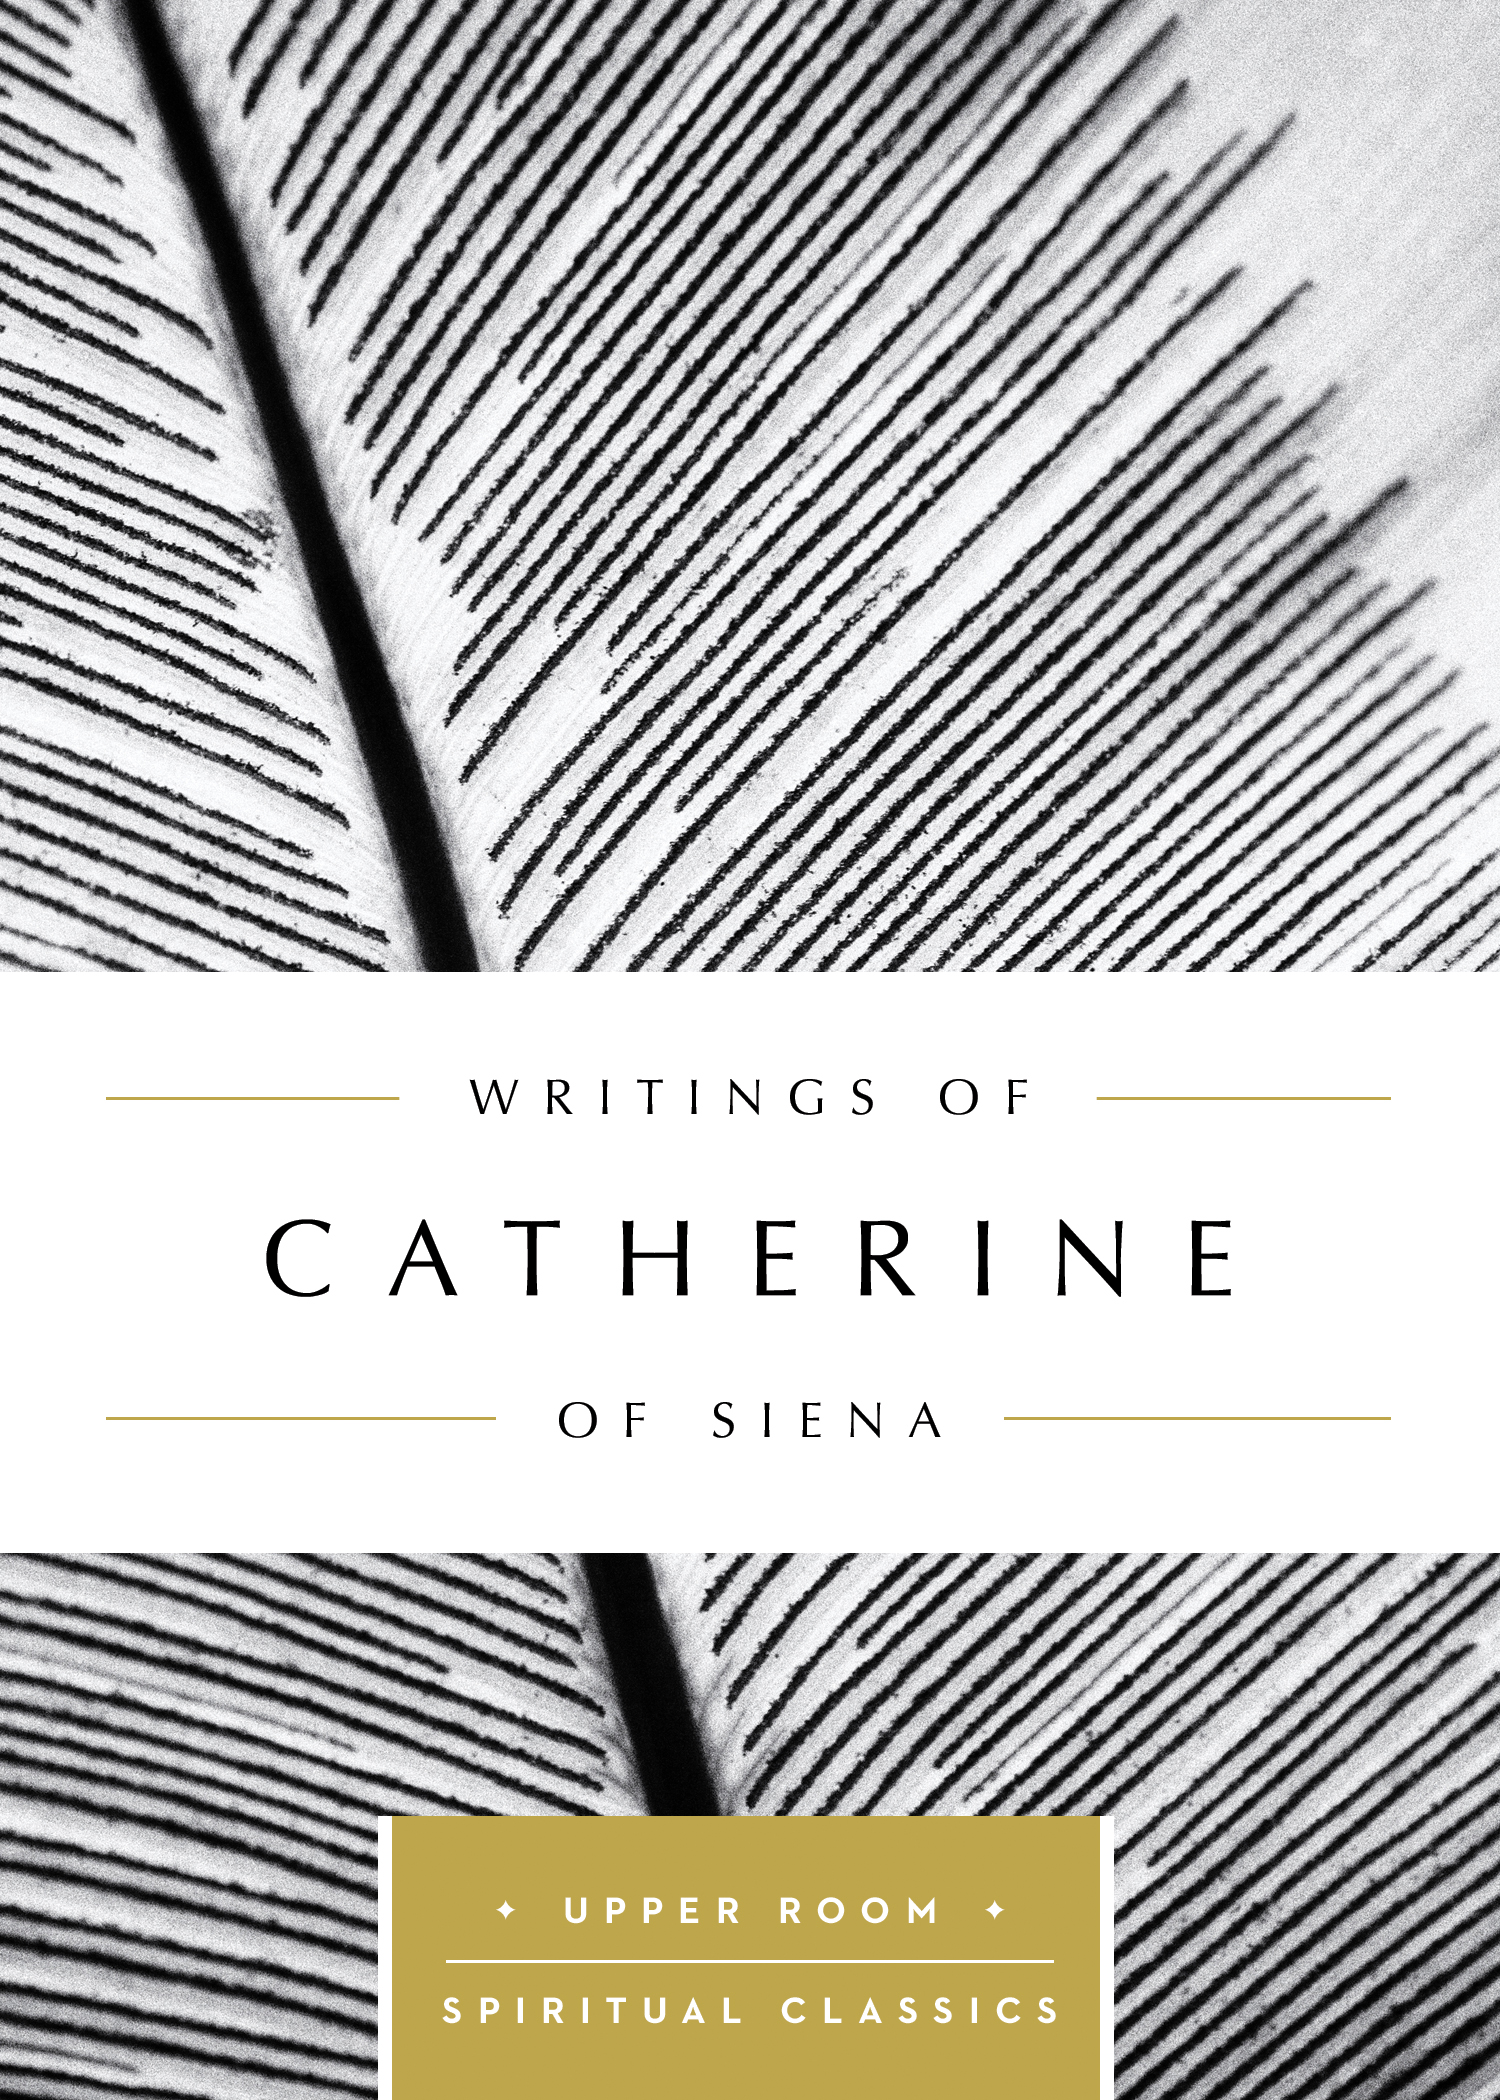 Writings of Catherine of Siena